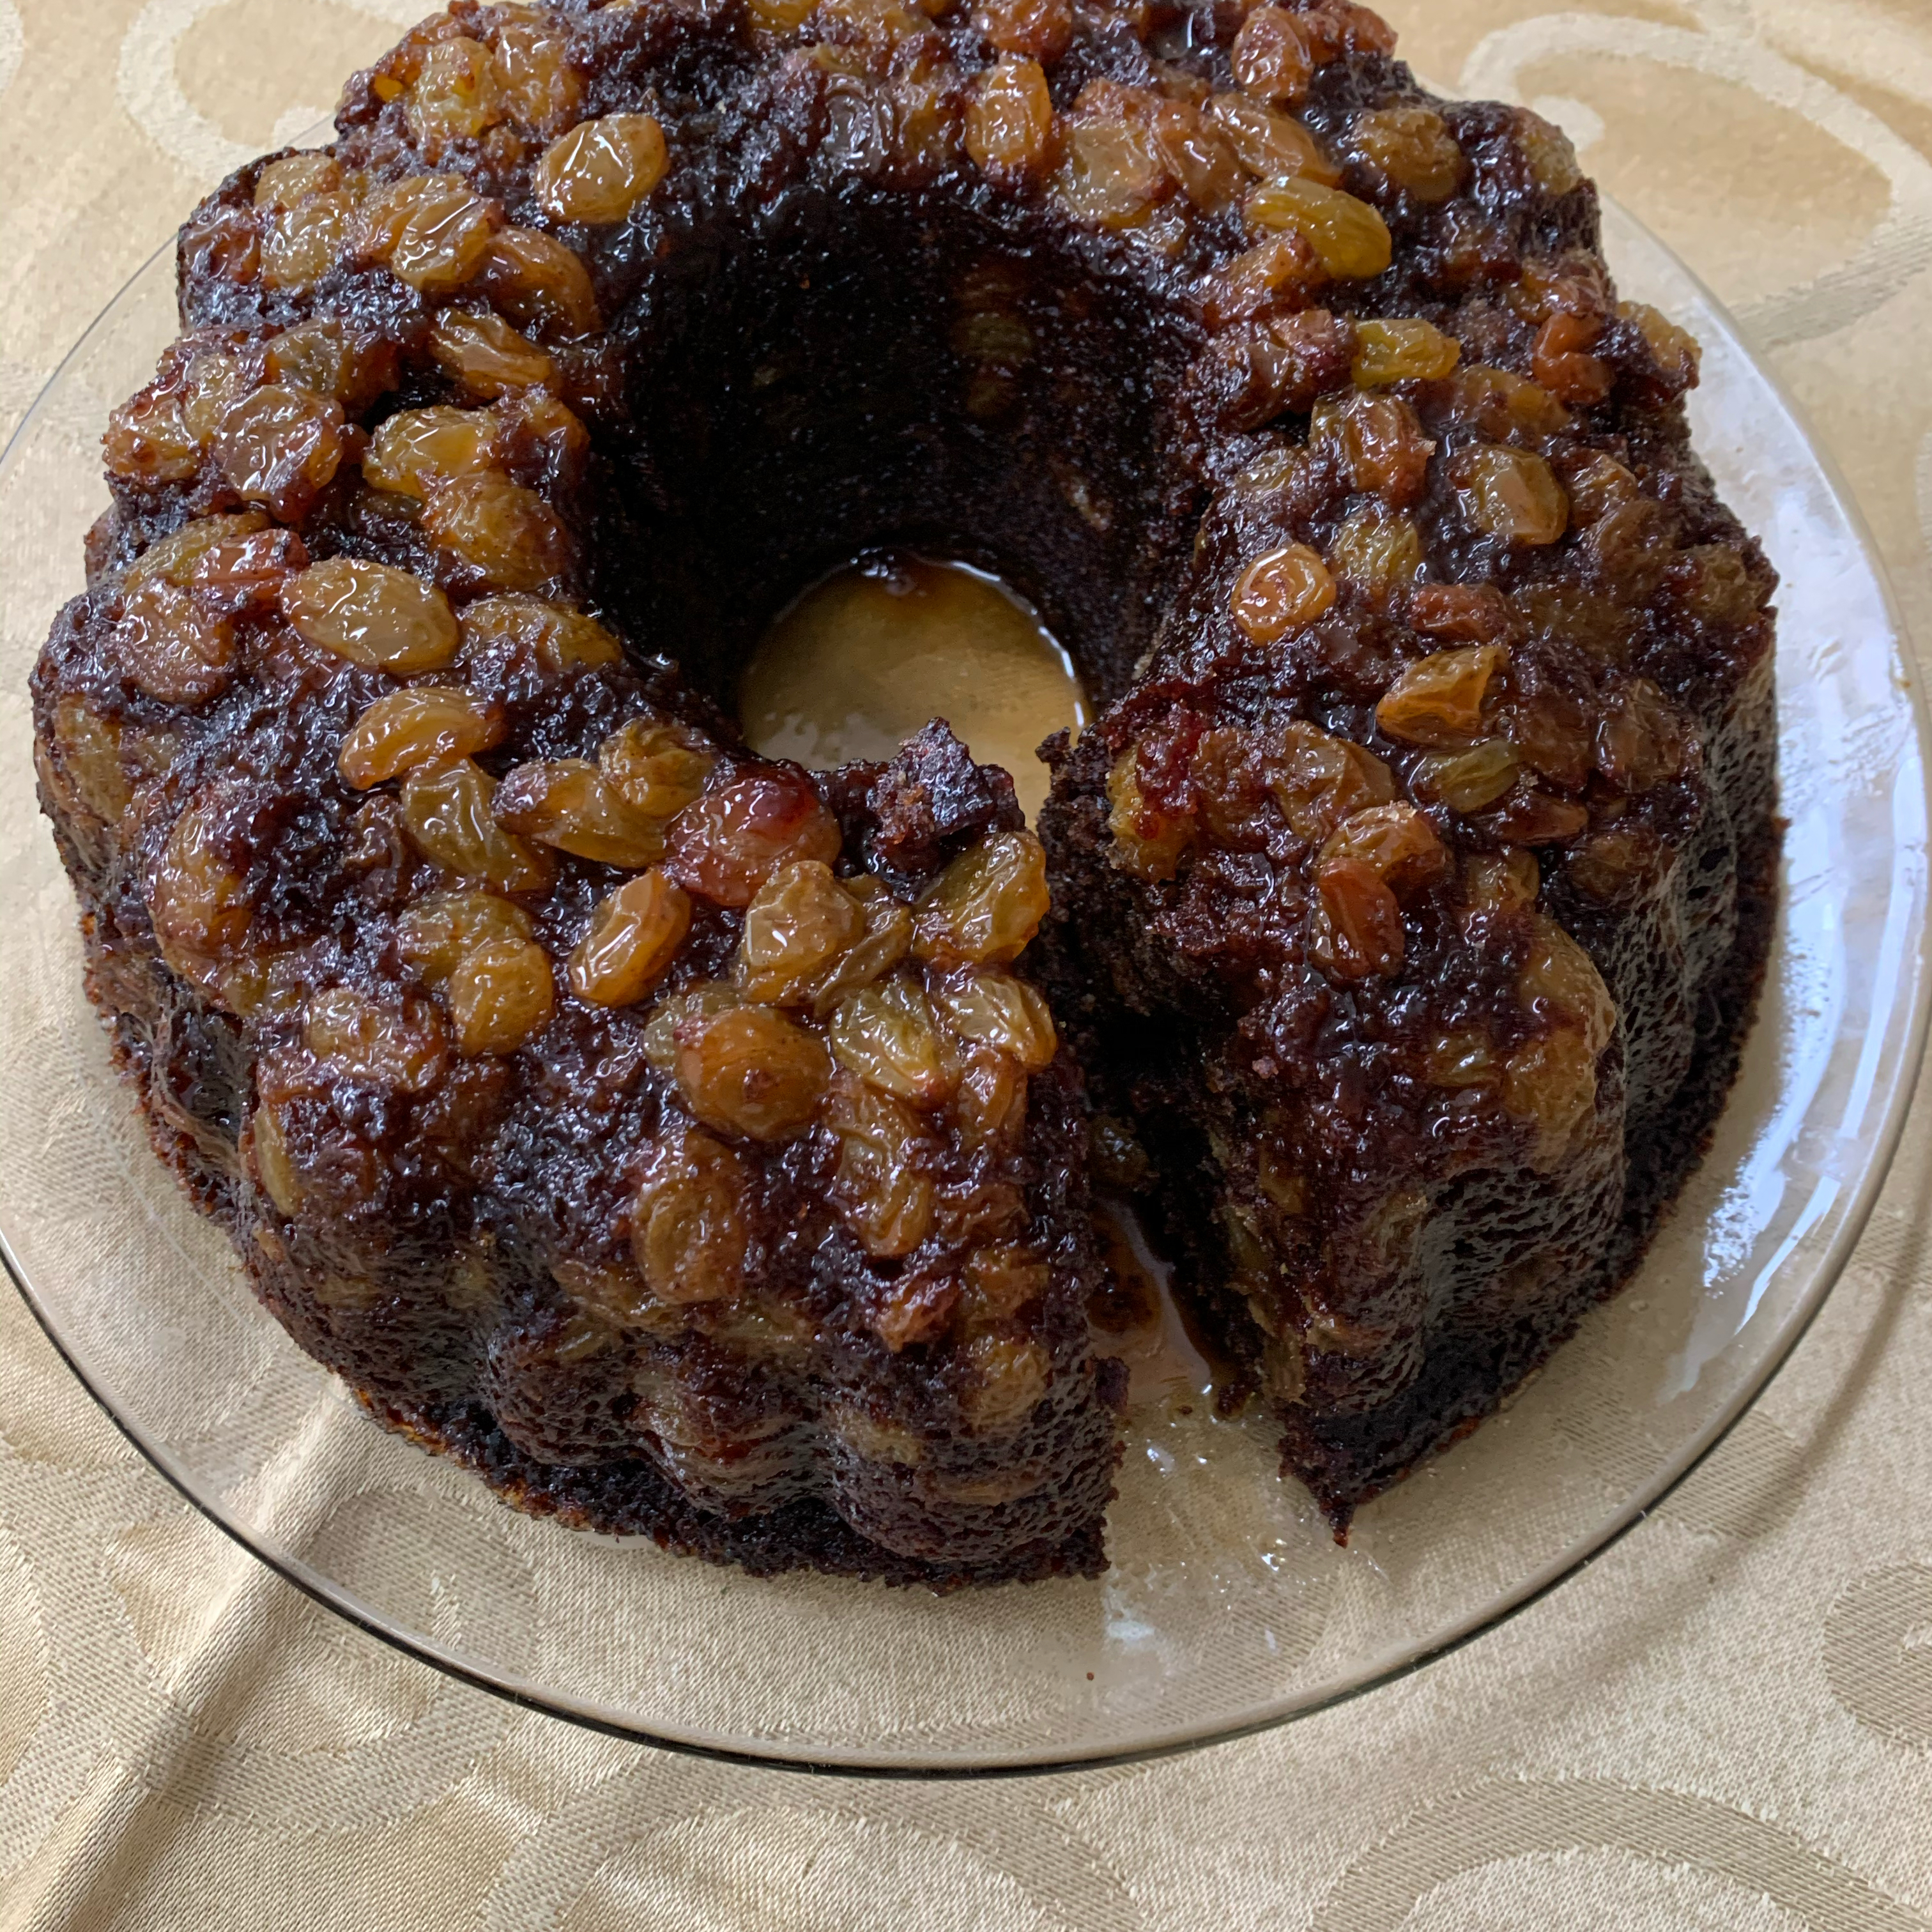 Mrs. Reagan's Persimmon Pudding Kim Andersen Trood